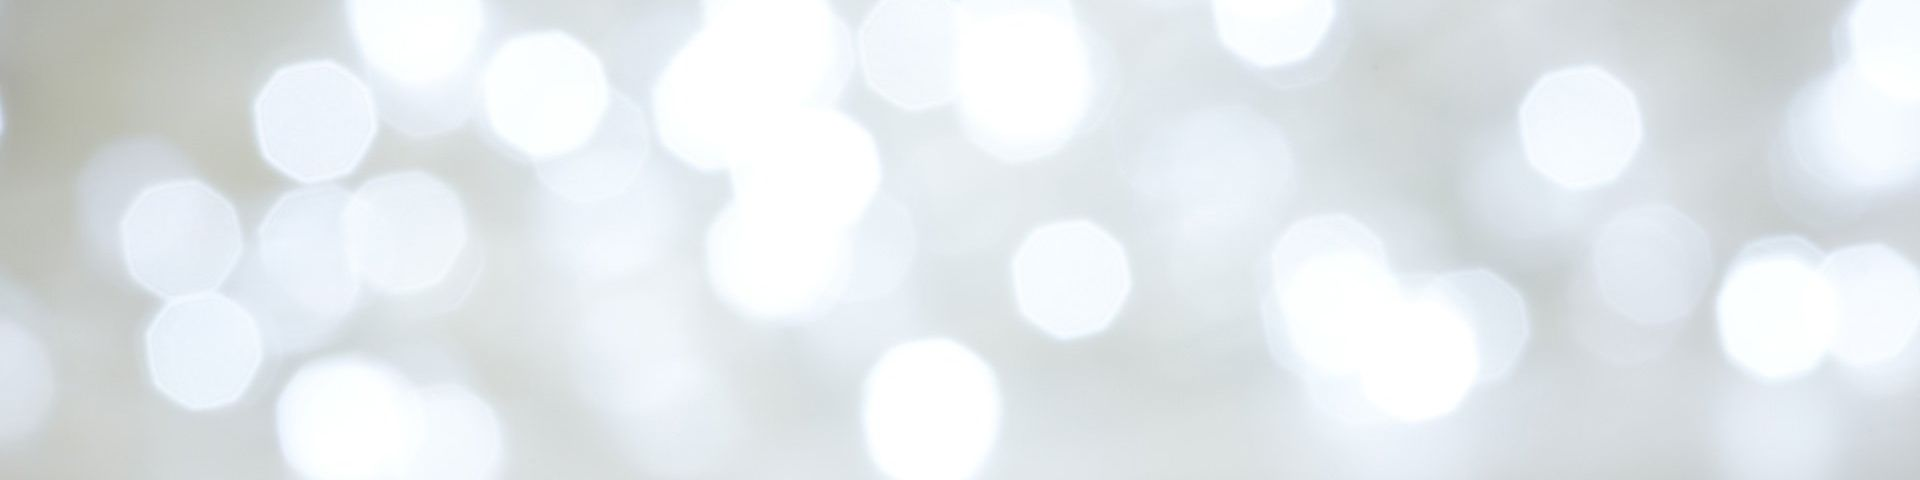 Dozens of lights, slightly blurred to create an abstract background in white and grey.